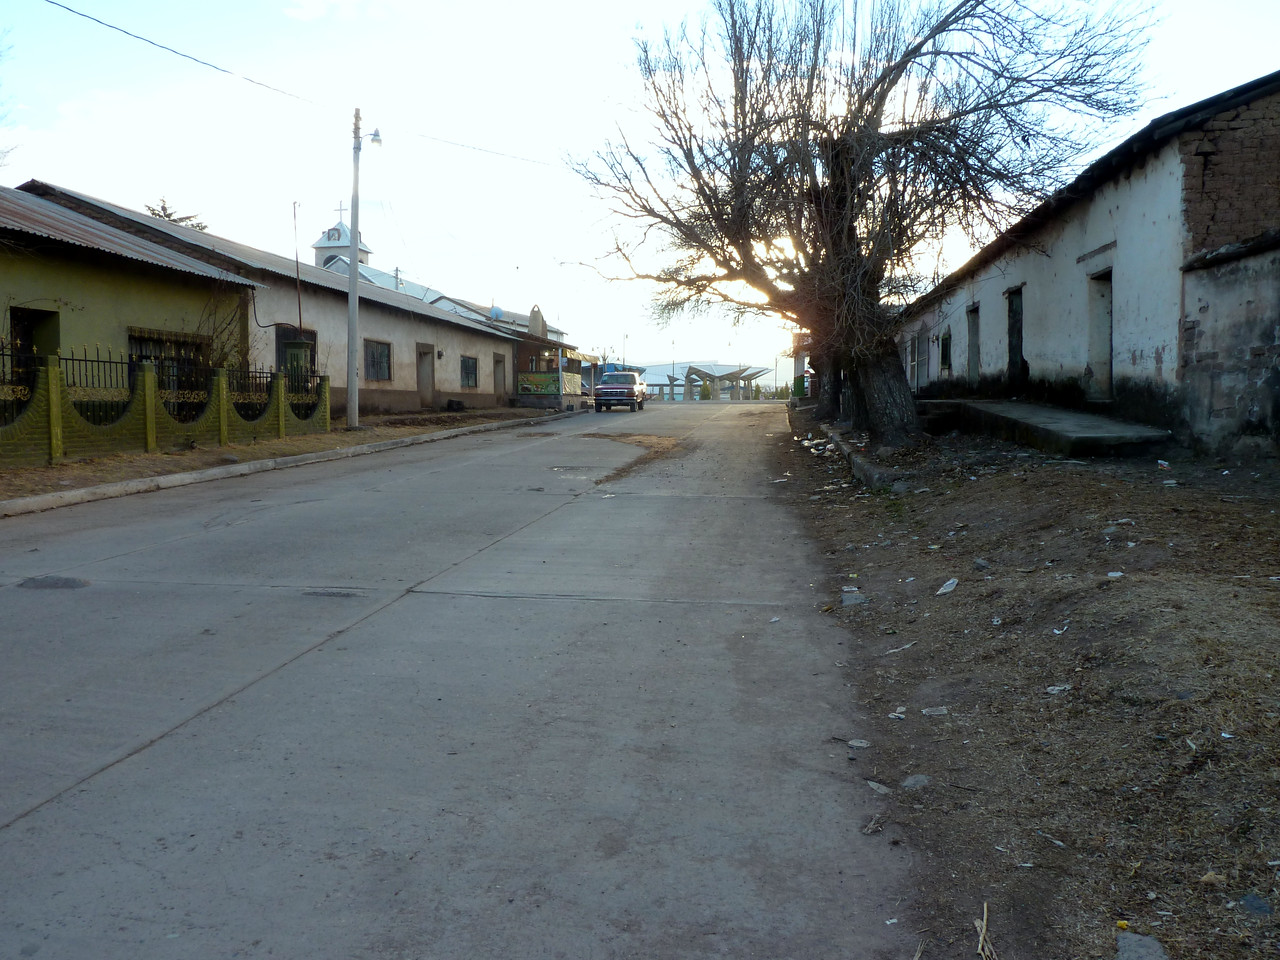 Looking towards the town center in Yecora.